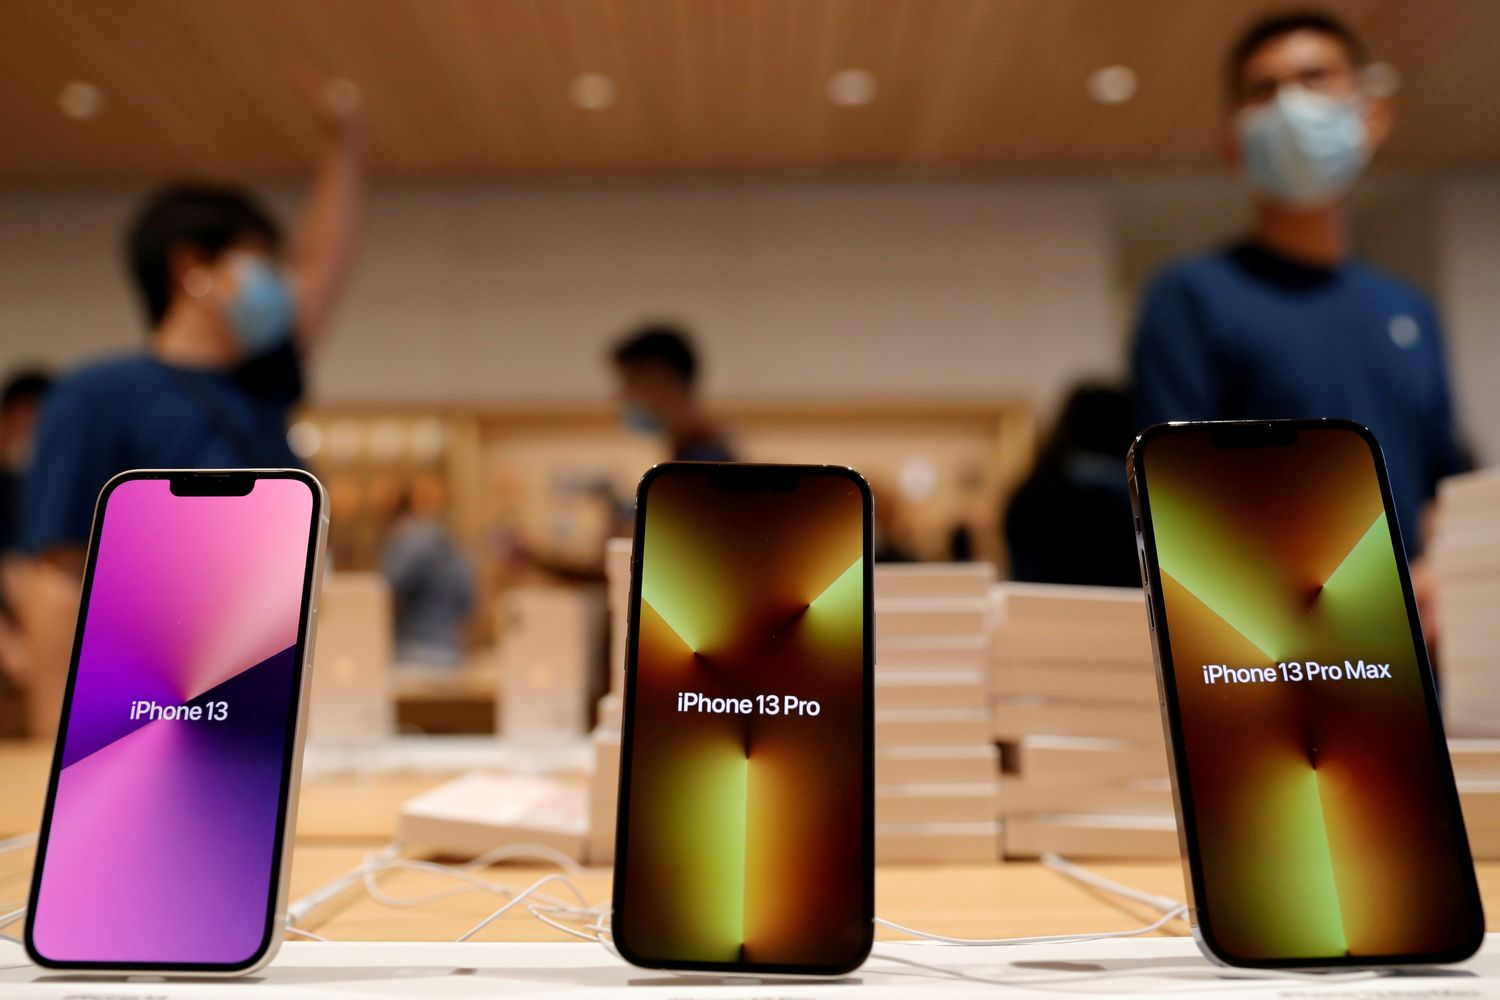 Apple's iPhone 13 models are pictured at an Apple Store on the day the new Apple iPhone 13 series goes on sale in Beijing on Septr 24. (Reuters photo)